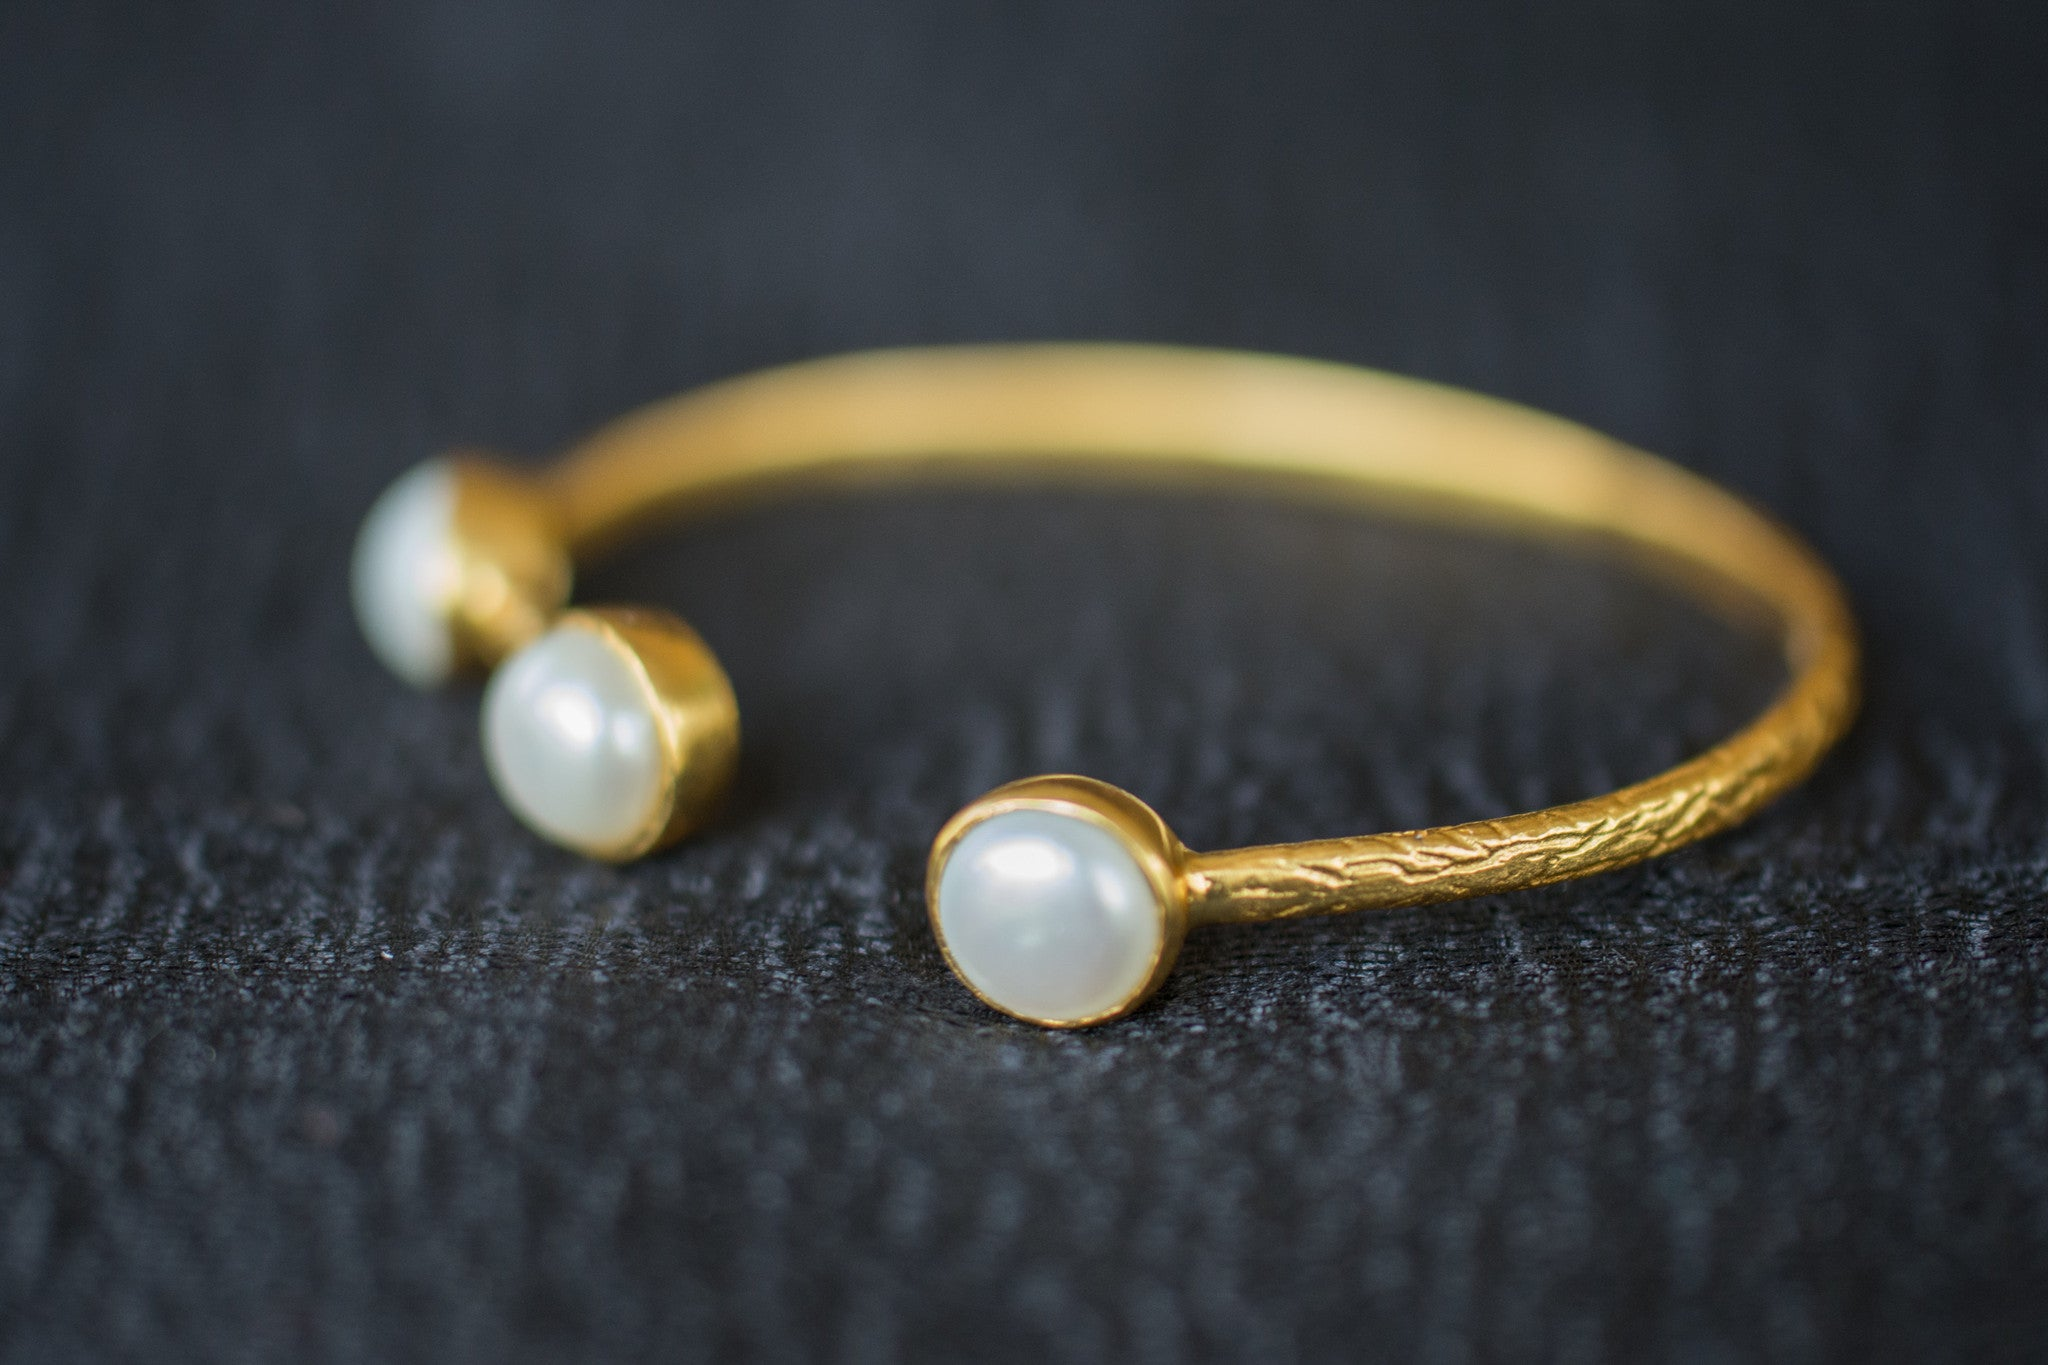 20a538-silver-gold-plated-amrapali-bangle-pearl-alternate-view